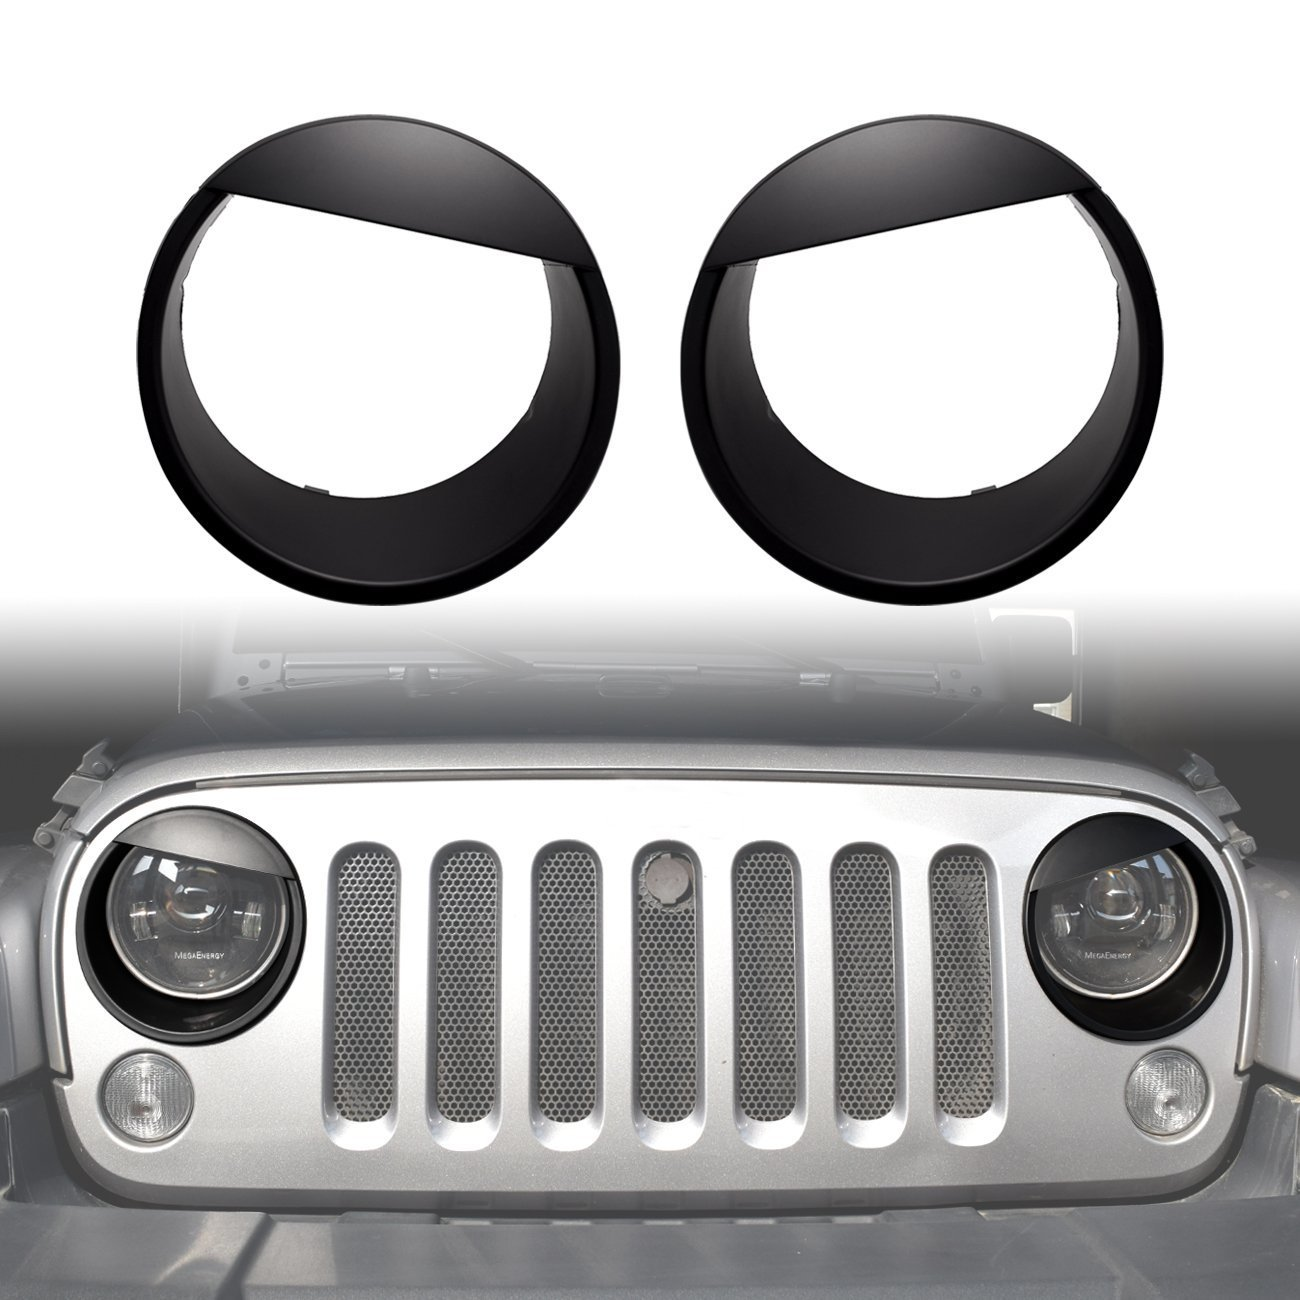 Front Lights Trim Cover Headlight Bezels Updated Version Clip-in Angry Eyes for 2007-2017 Jeep Wrangler JK JKU Unlimited Rubicon Sahara Sport Exterior Accessories Parts topfullrock